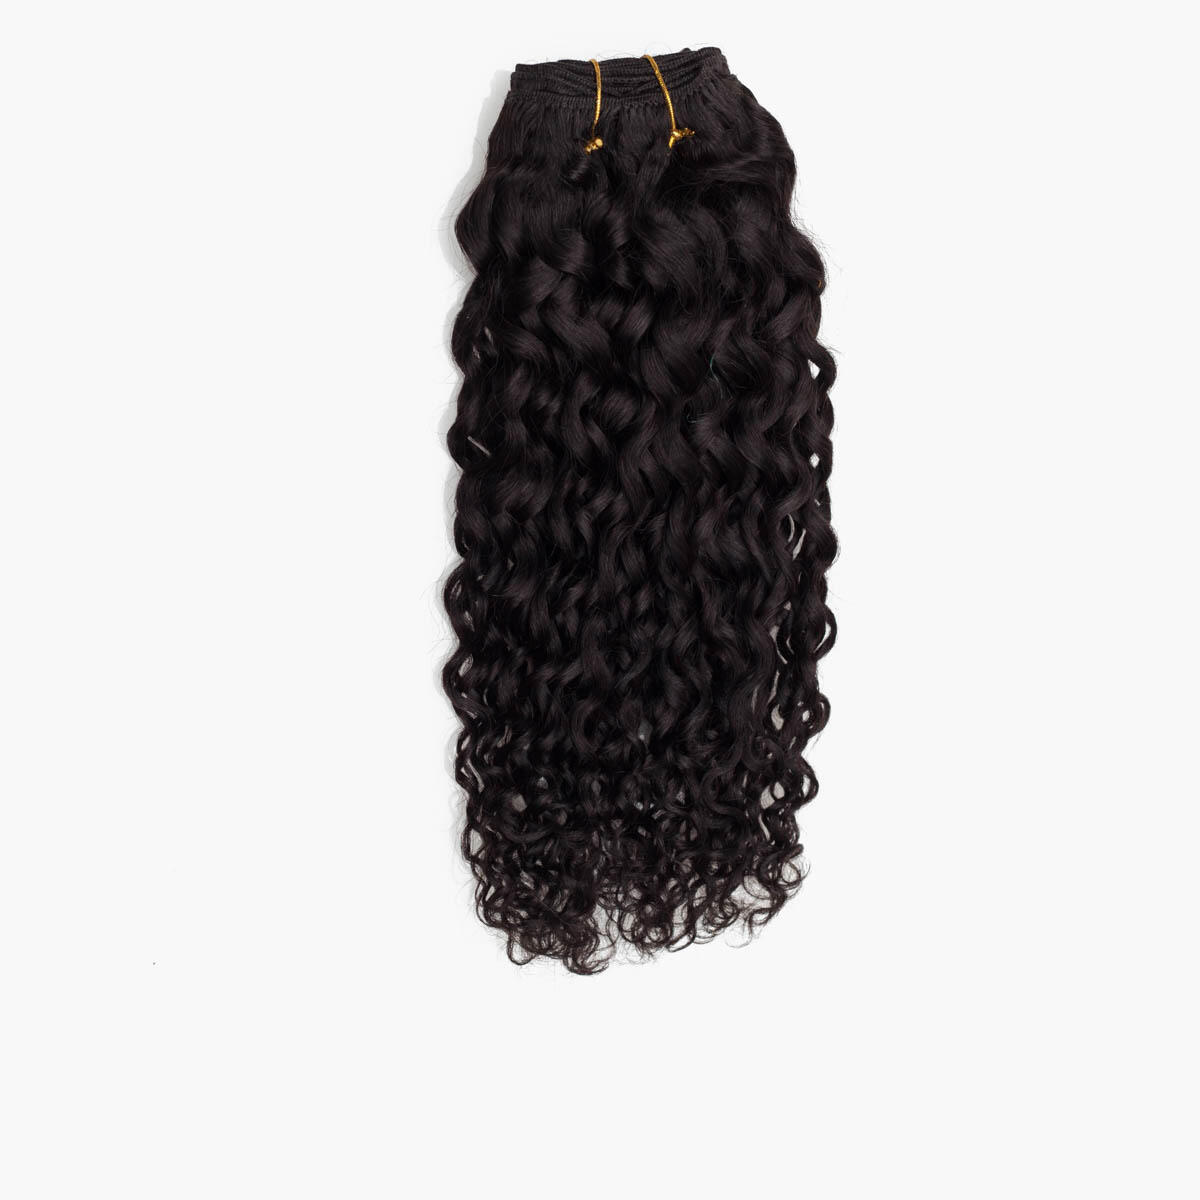 Haartresse Curly Curls 1.2 Black Brown 35 cm